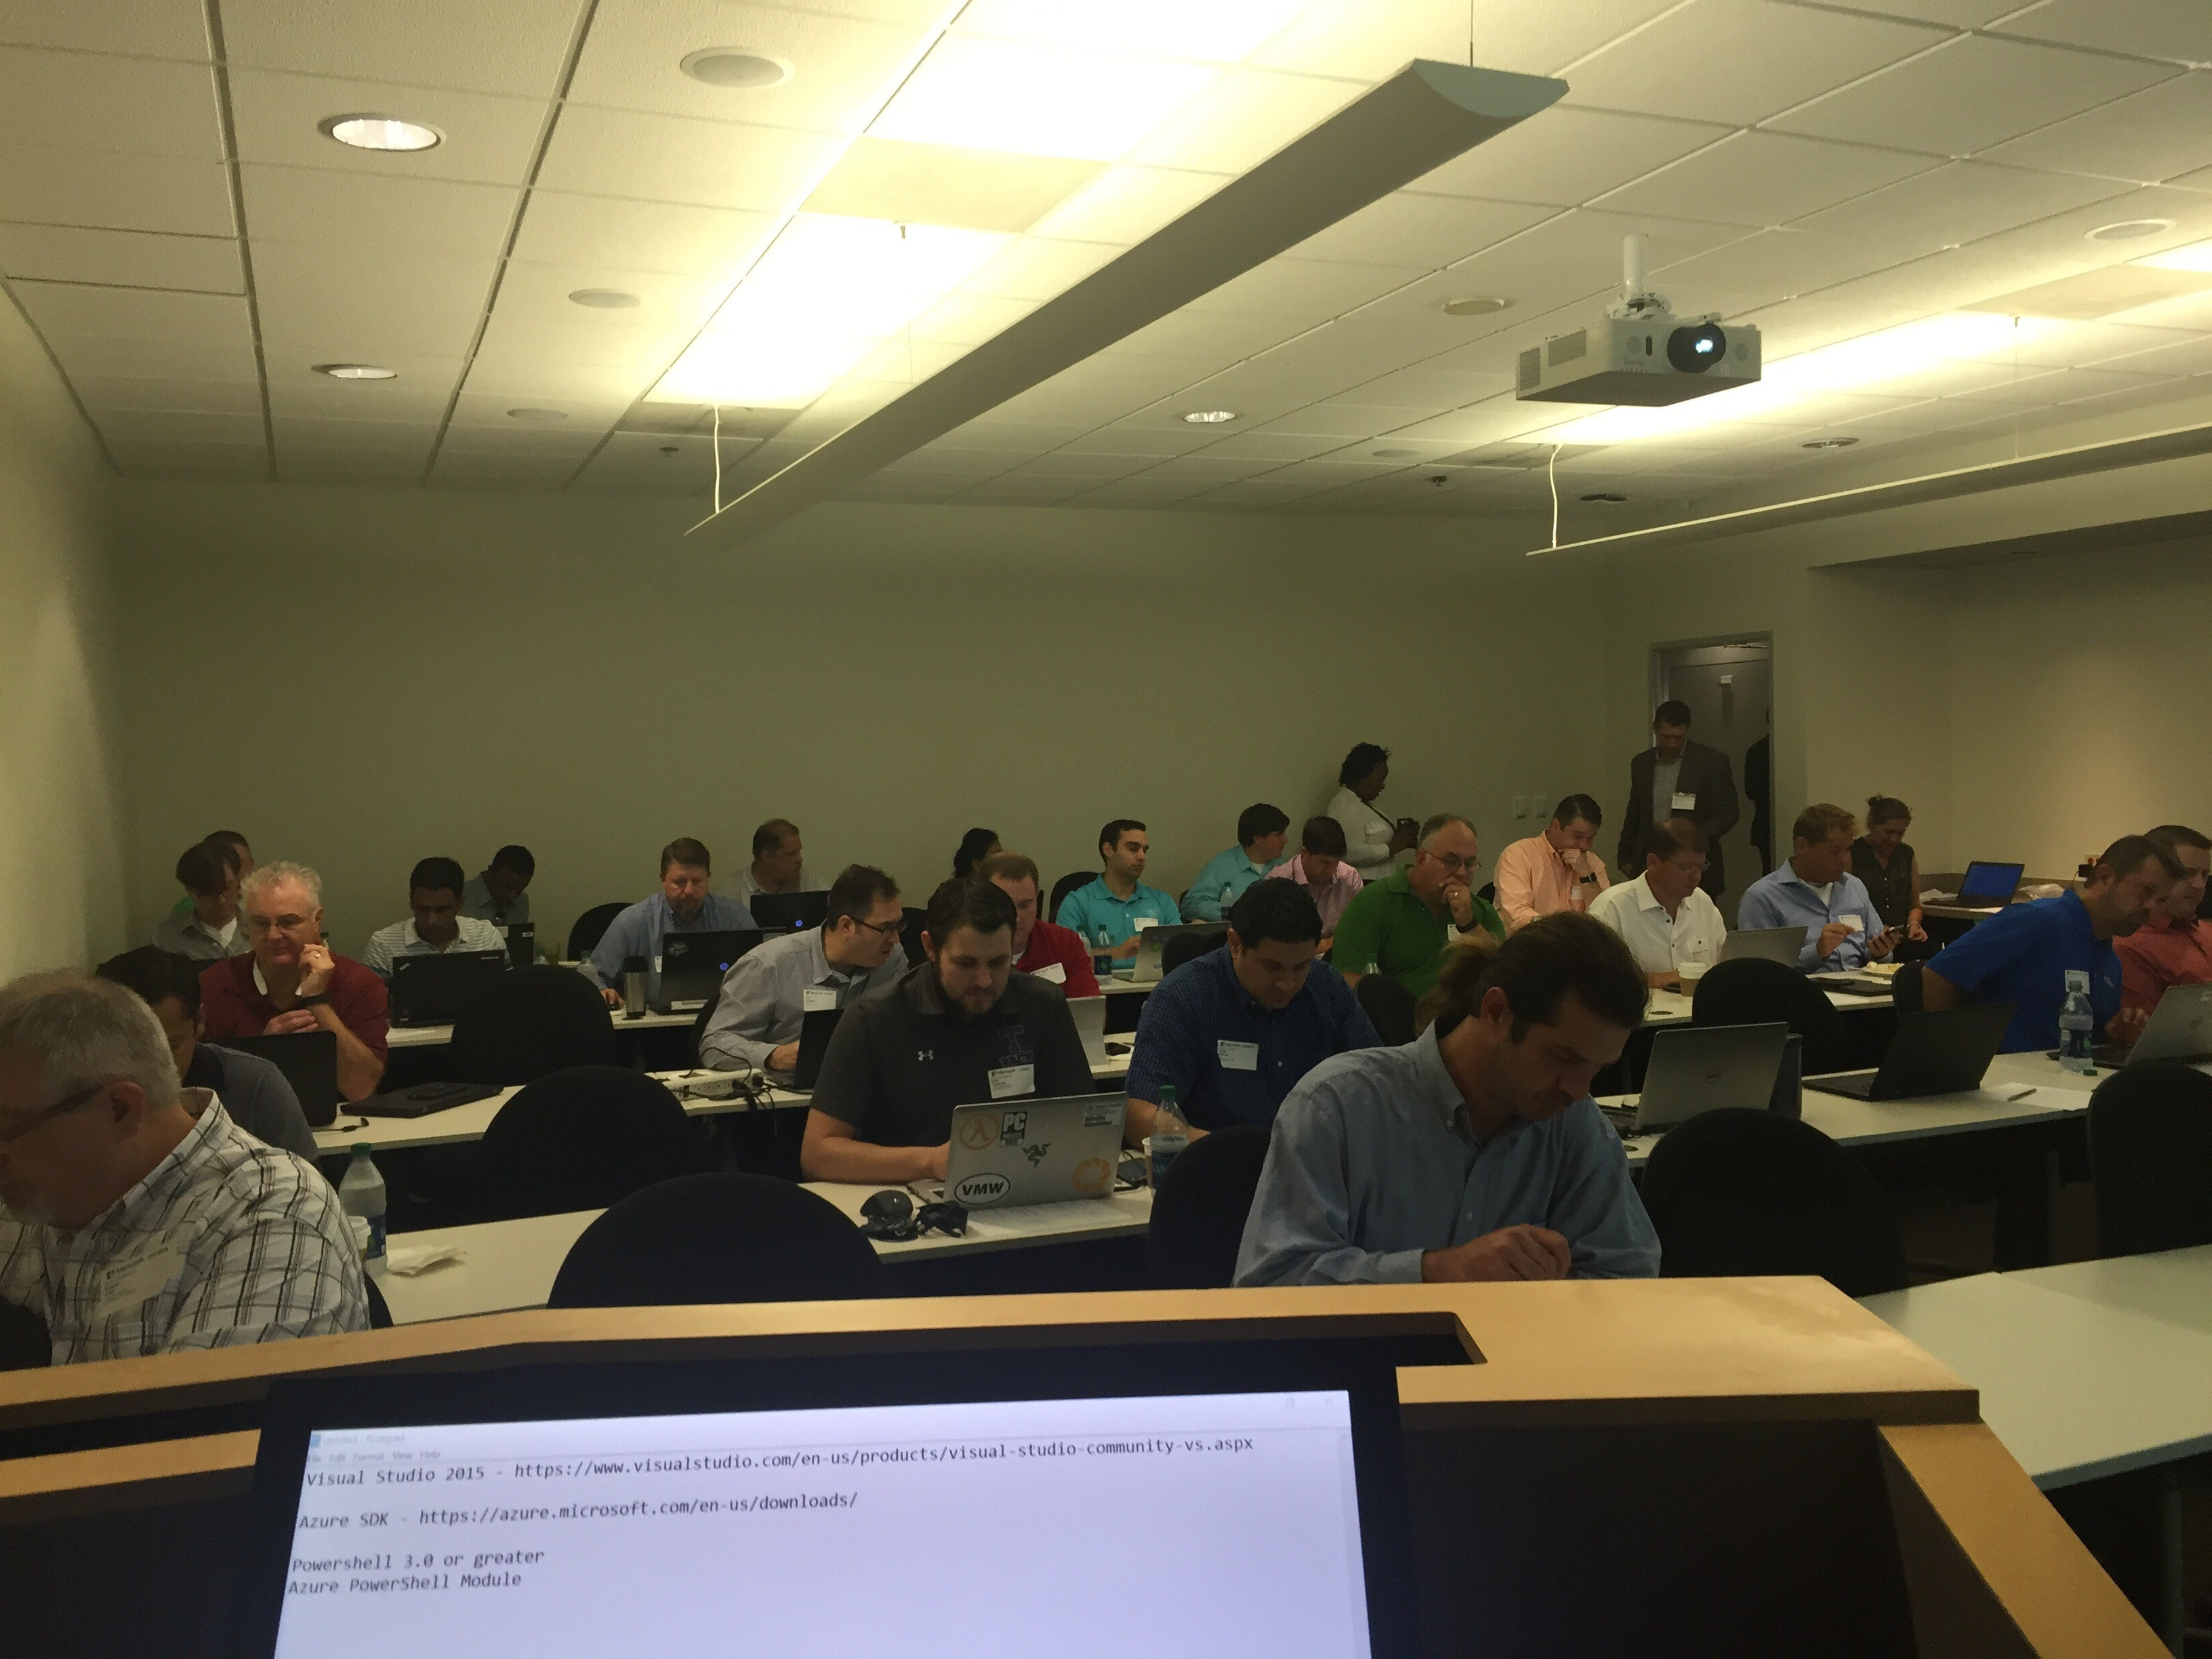 A classroom-style room full of men working on laptops